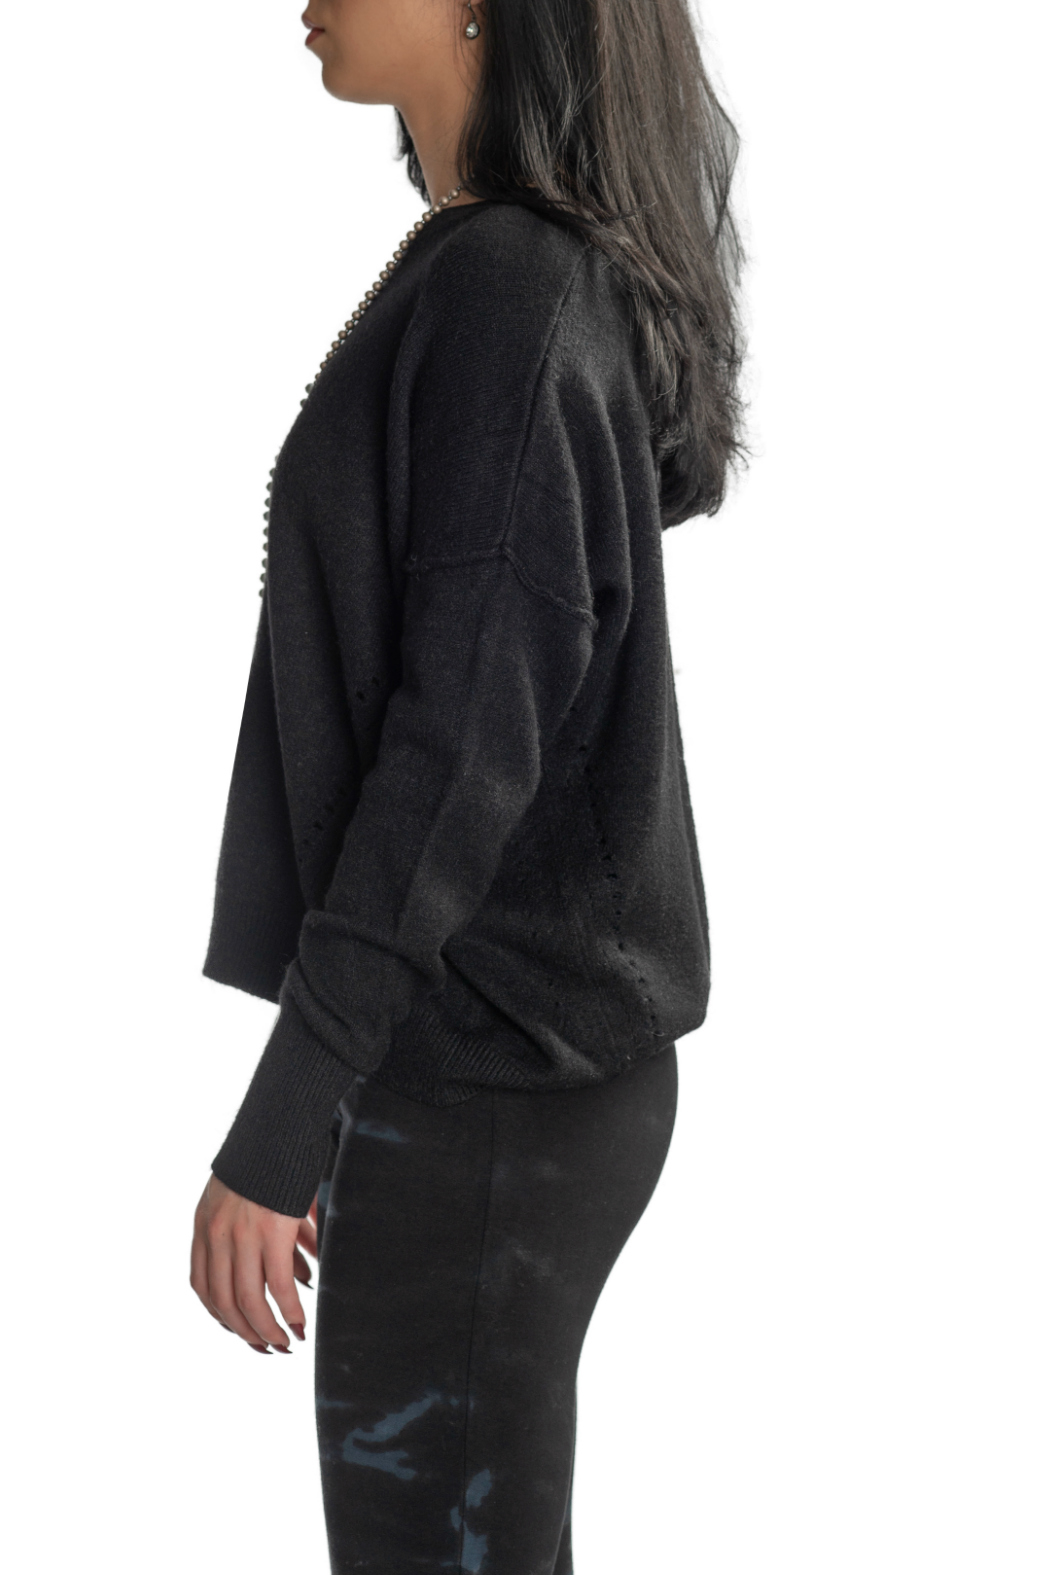 METRIC Slouchy Pindot Center Seam Sweater - Side Cropped Image